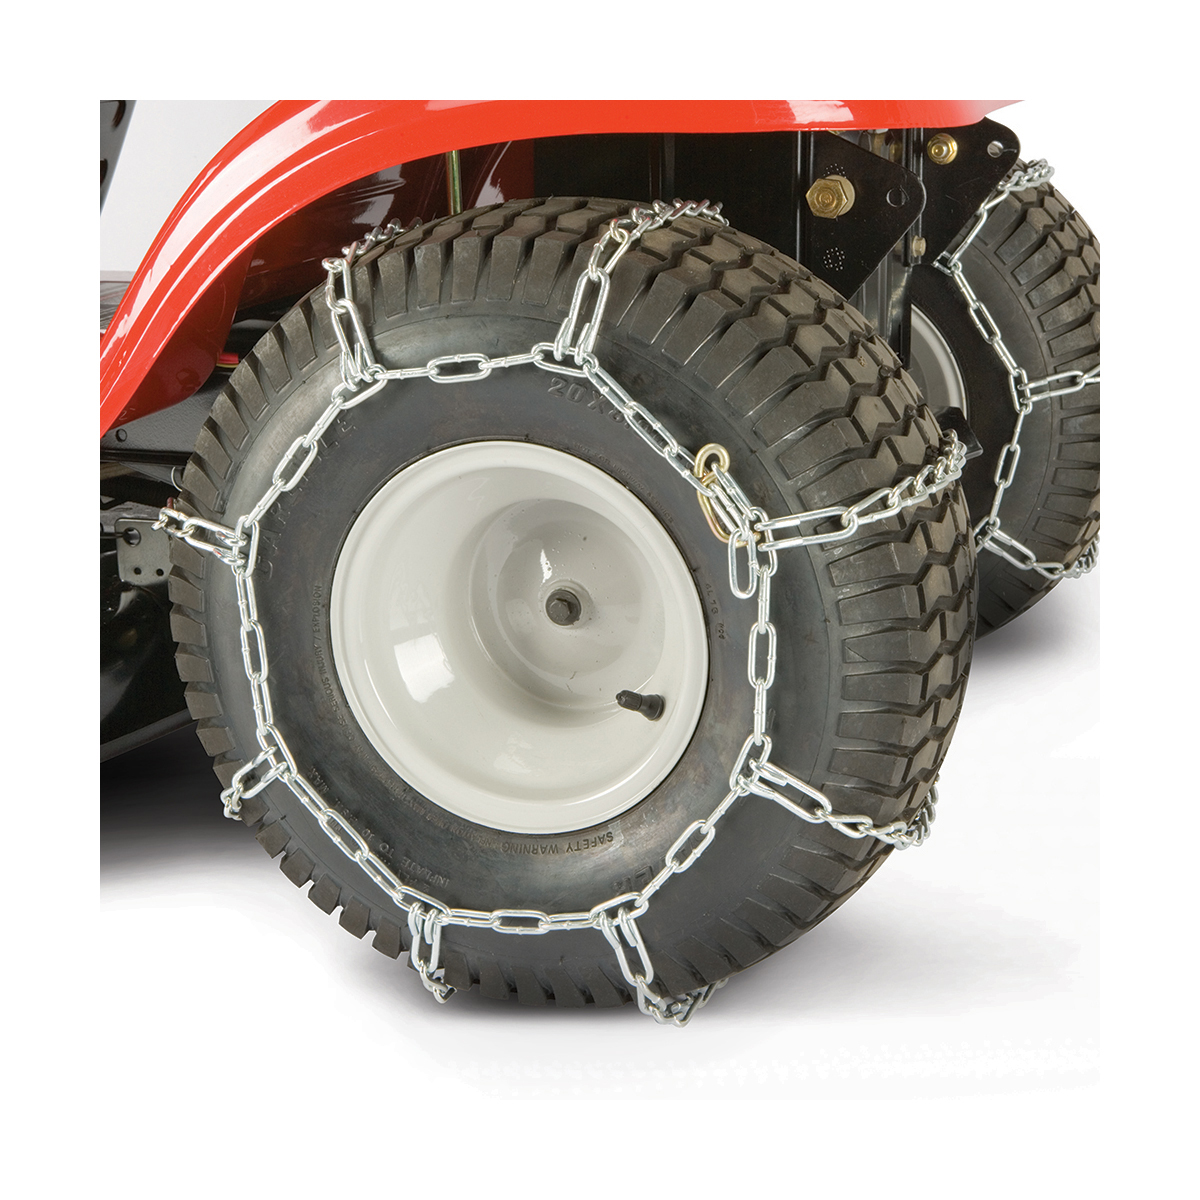 Tire Chains (18.5 x 8.5) 490-241-0021